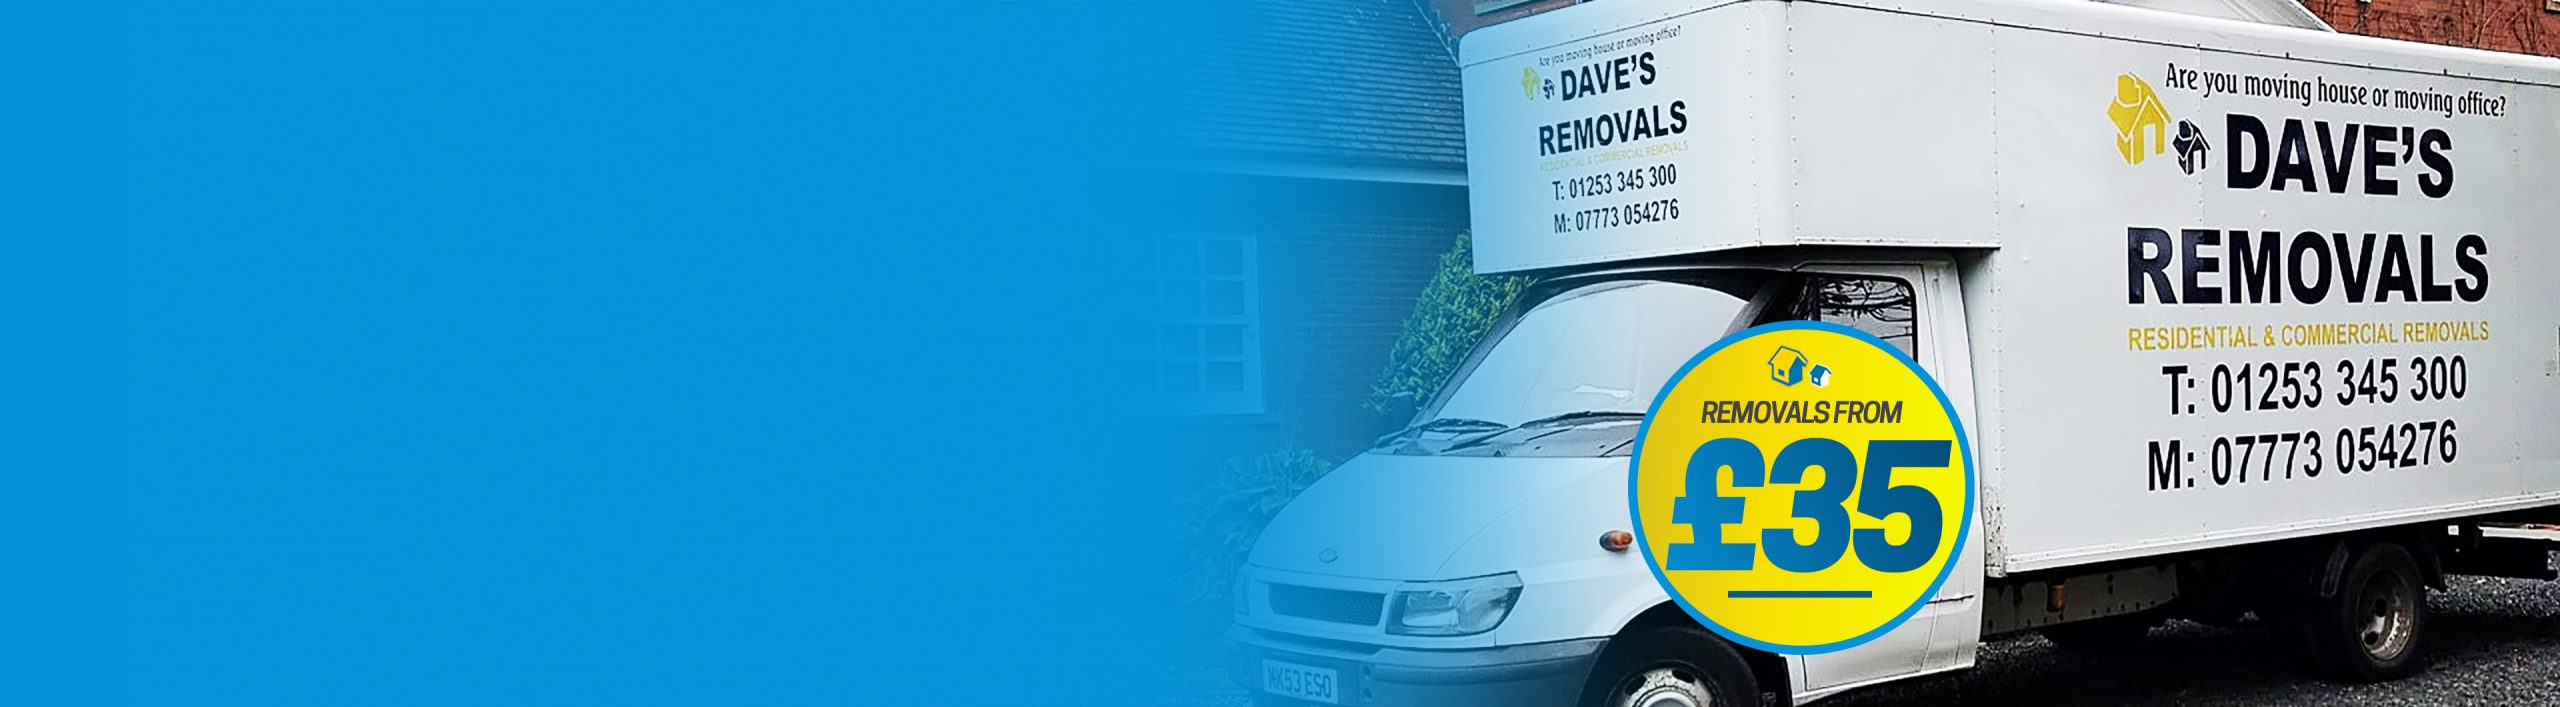 home removals your area